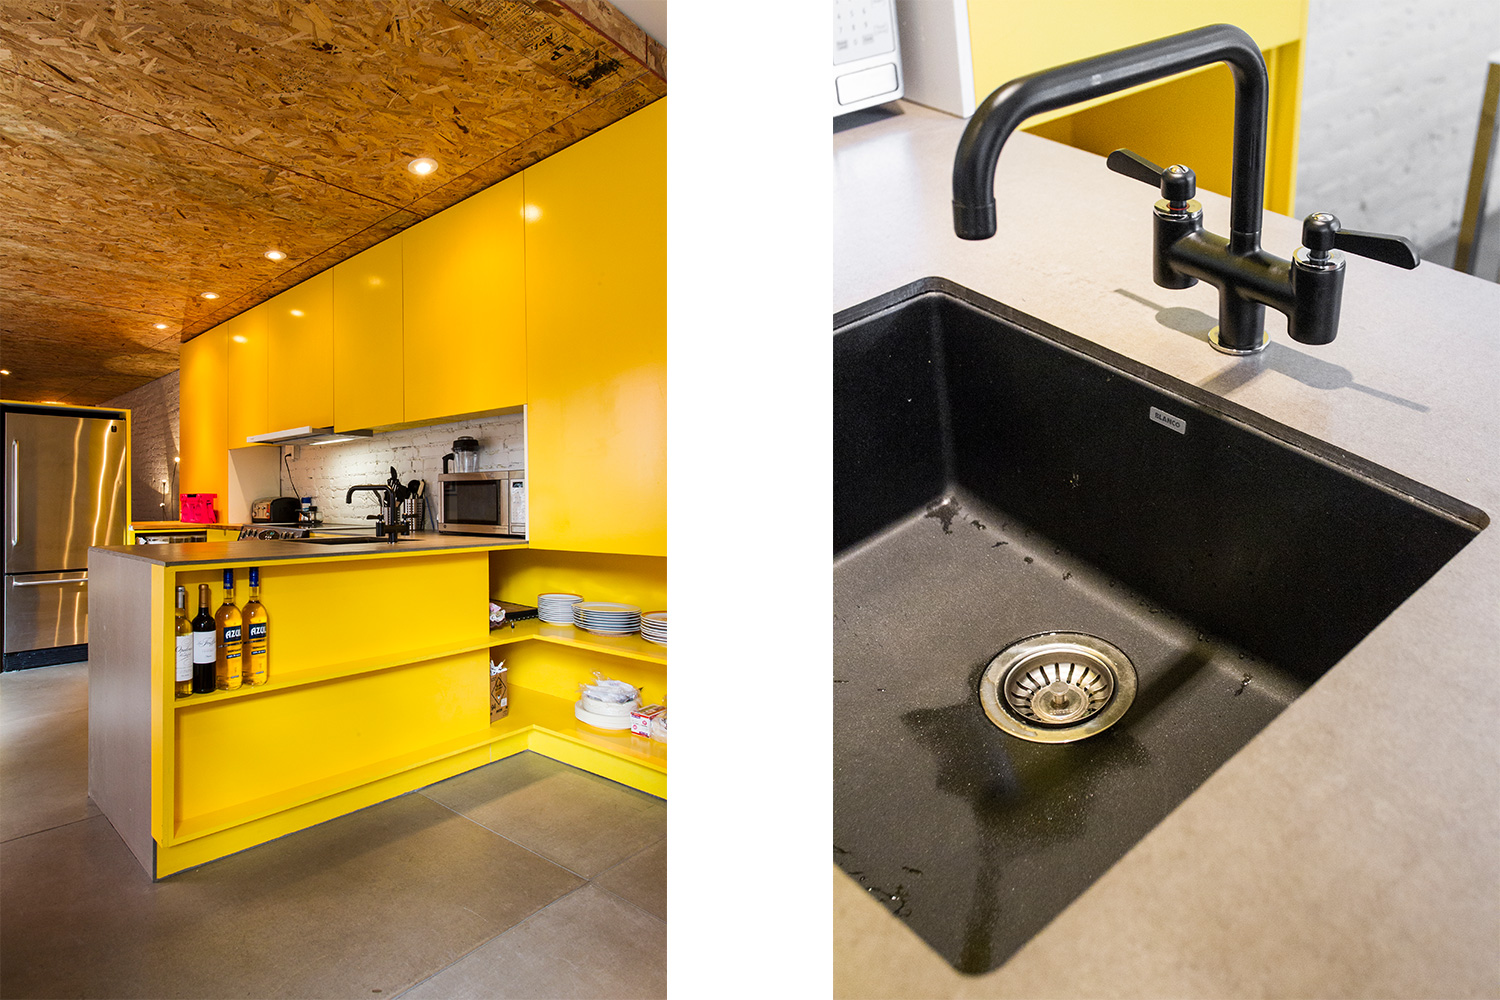 White painted brick wall. Yellow custom kitchen. Concrete floor. Ceiling finished with osb panels. Counter made of fiber cement panels. Sink in black silgranit.